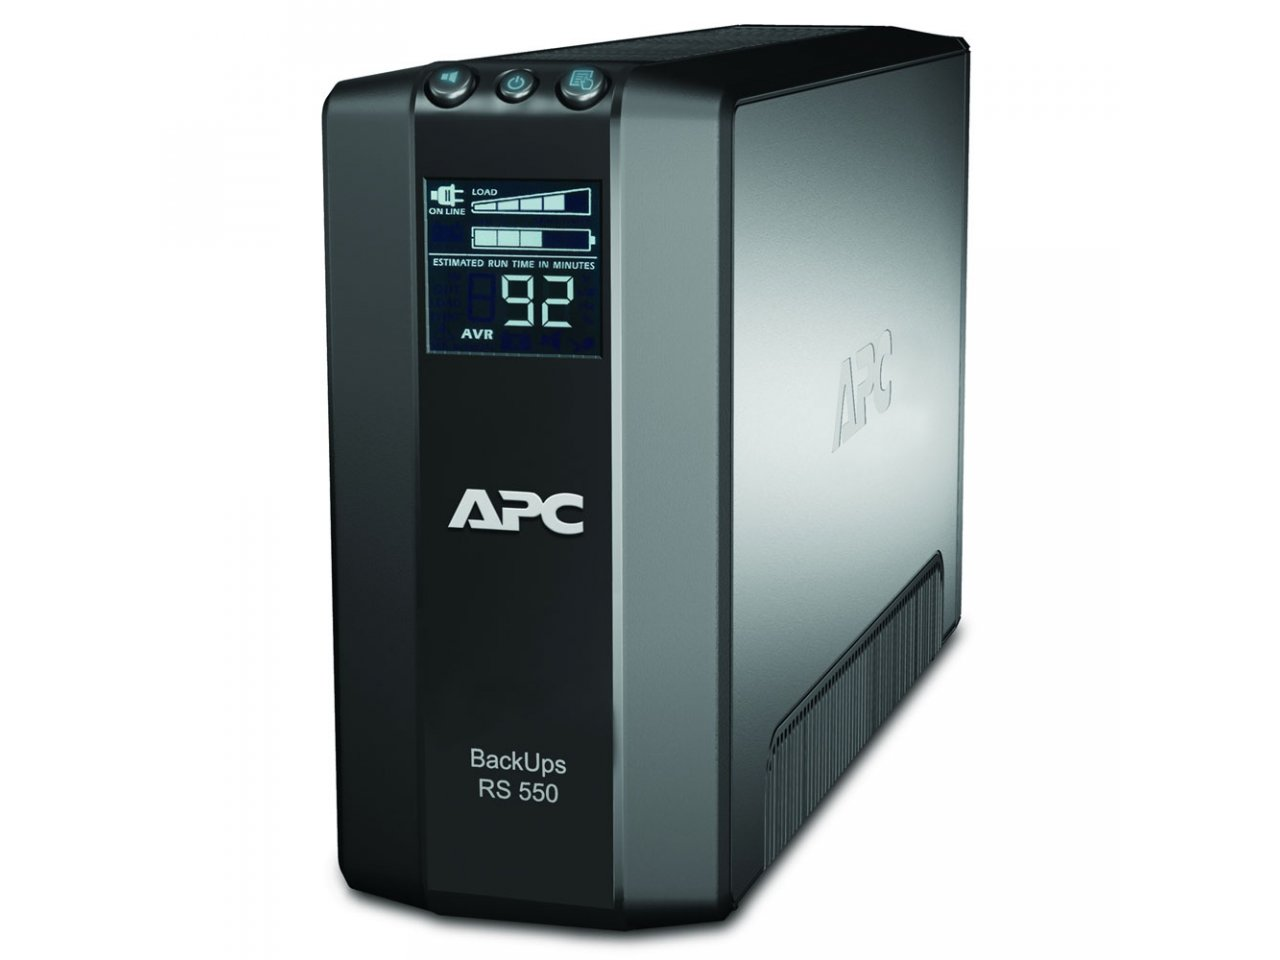 ИБП APC by Schneider Electric Back-UPS Pro 550VA/330W 230V Line-Interactive Hot Swap User Replaceabl BR550GI